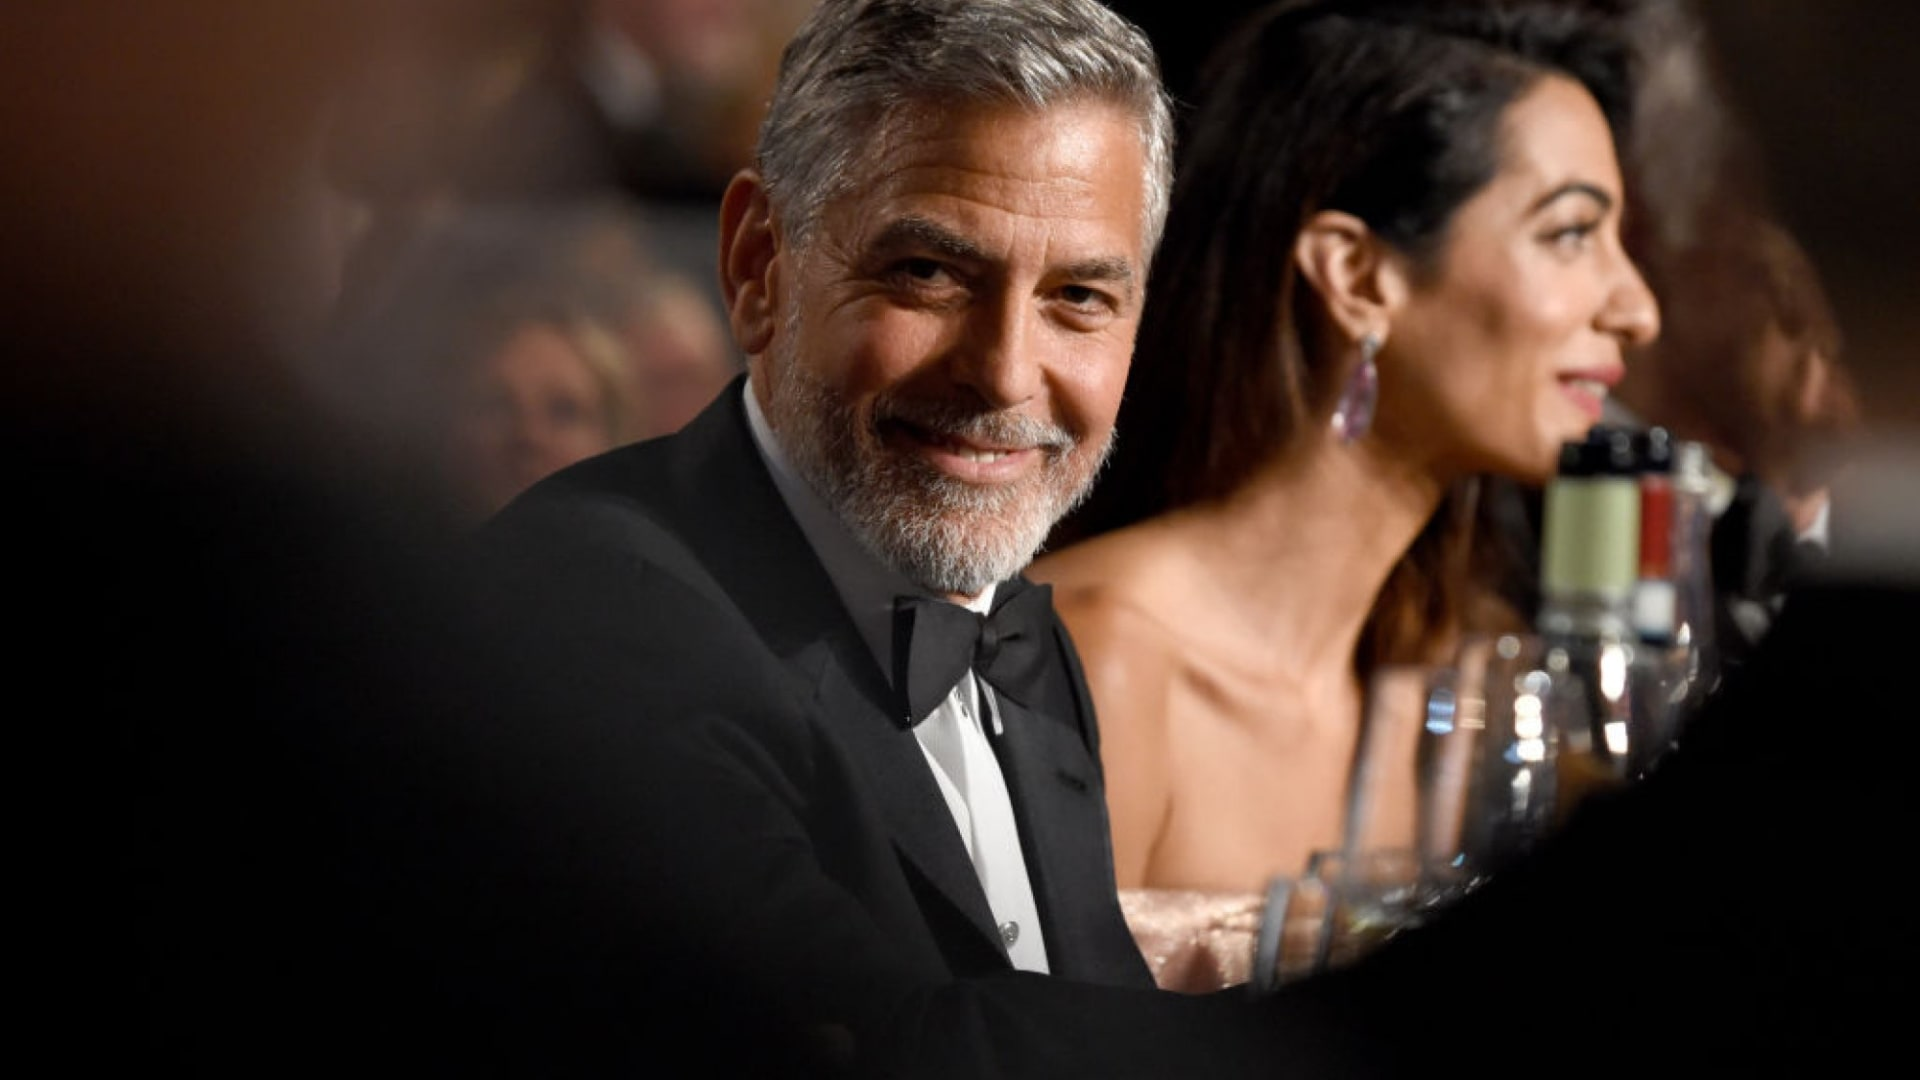 George Clooney and his wife, Amal Clooney.